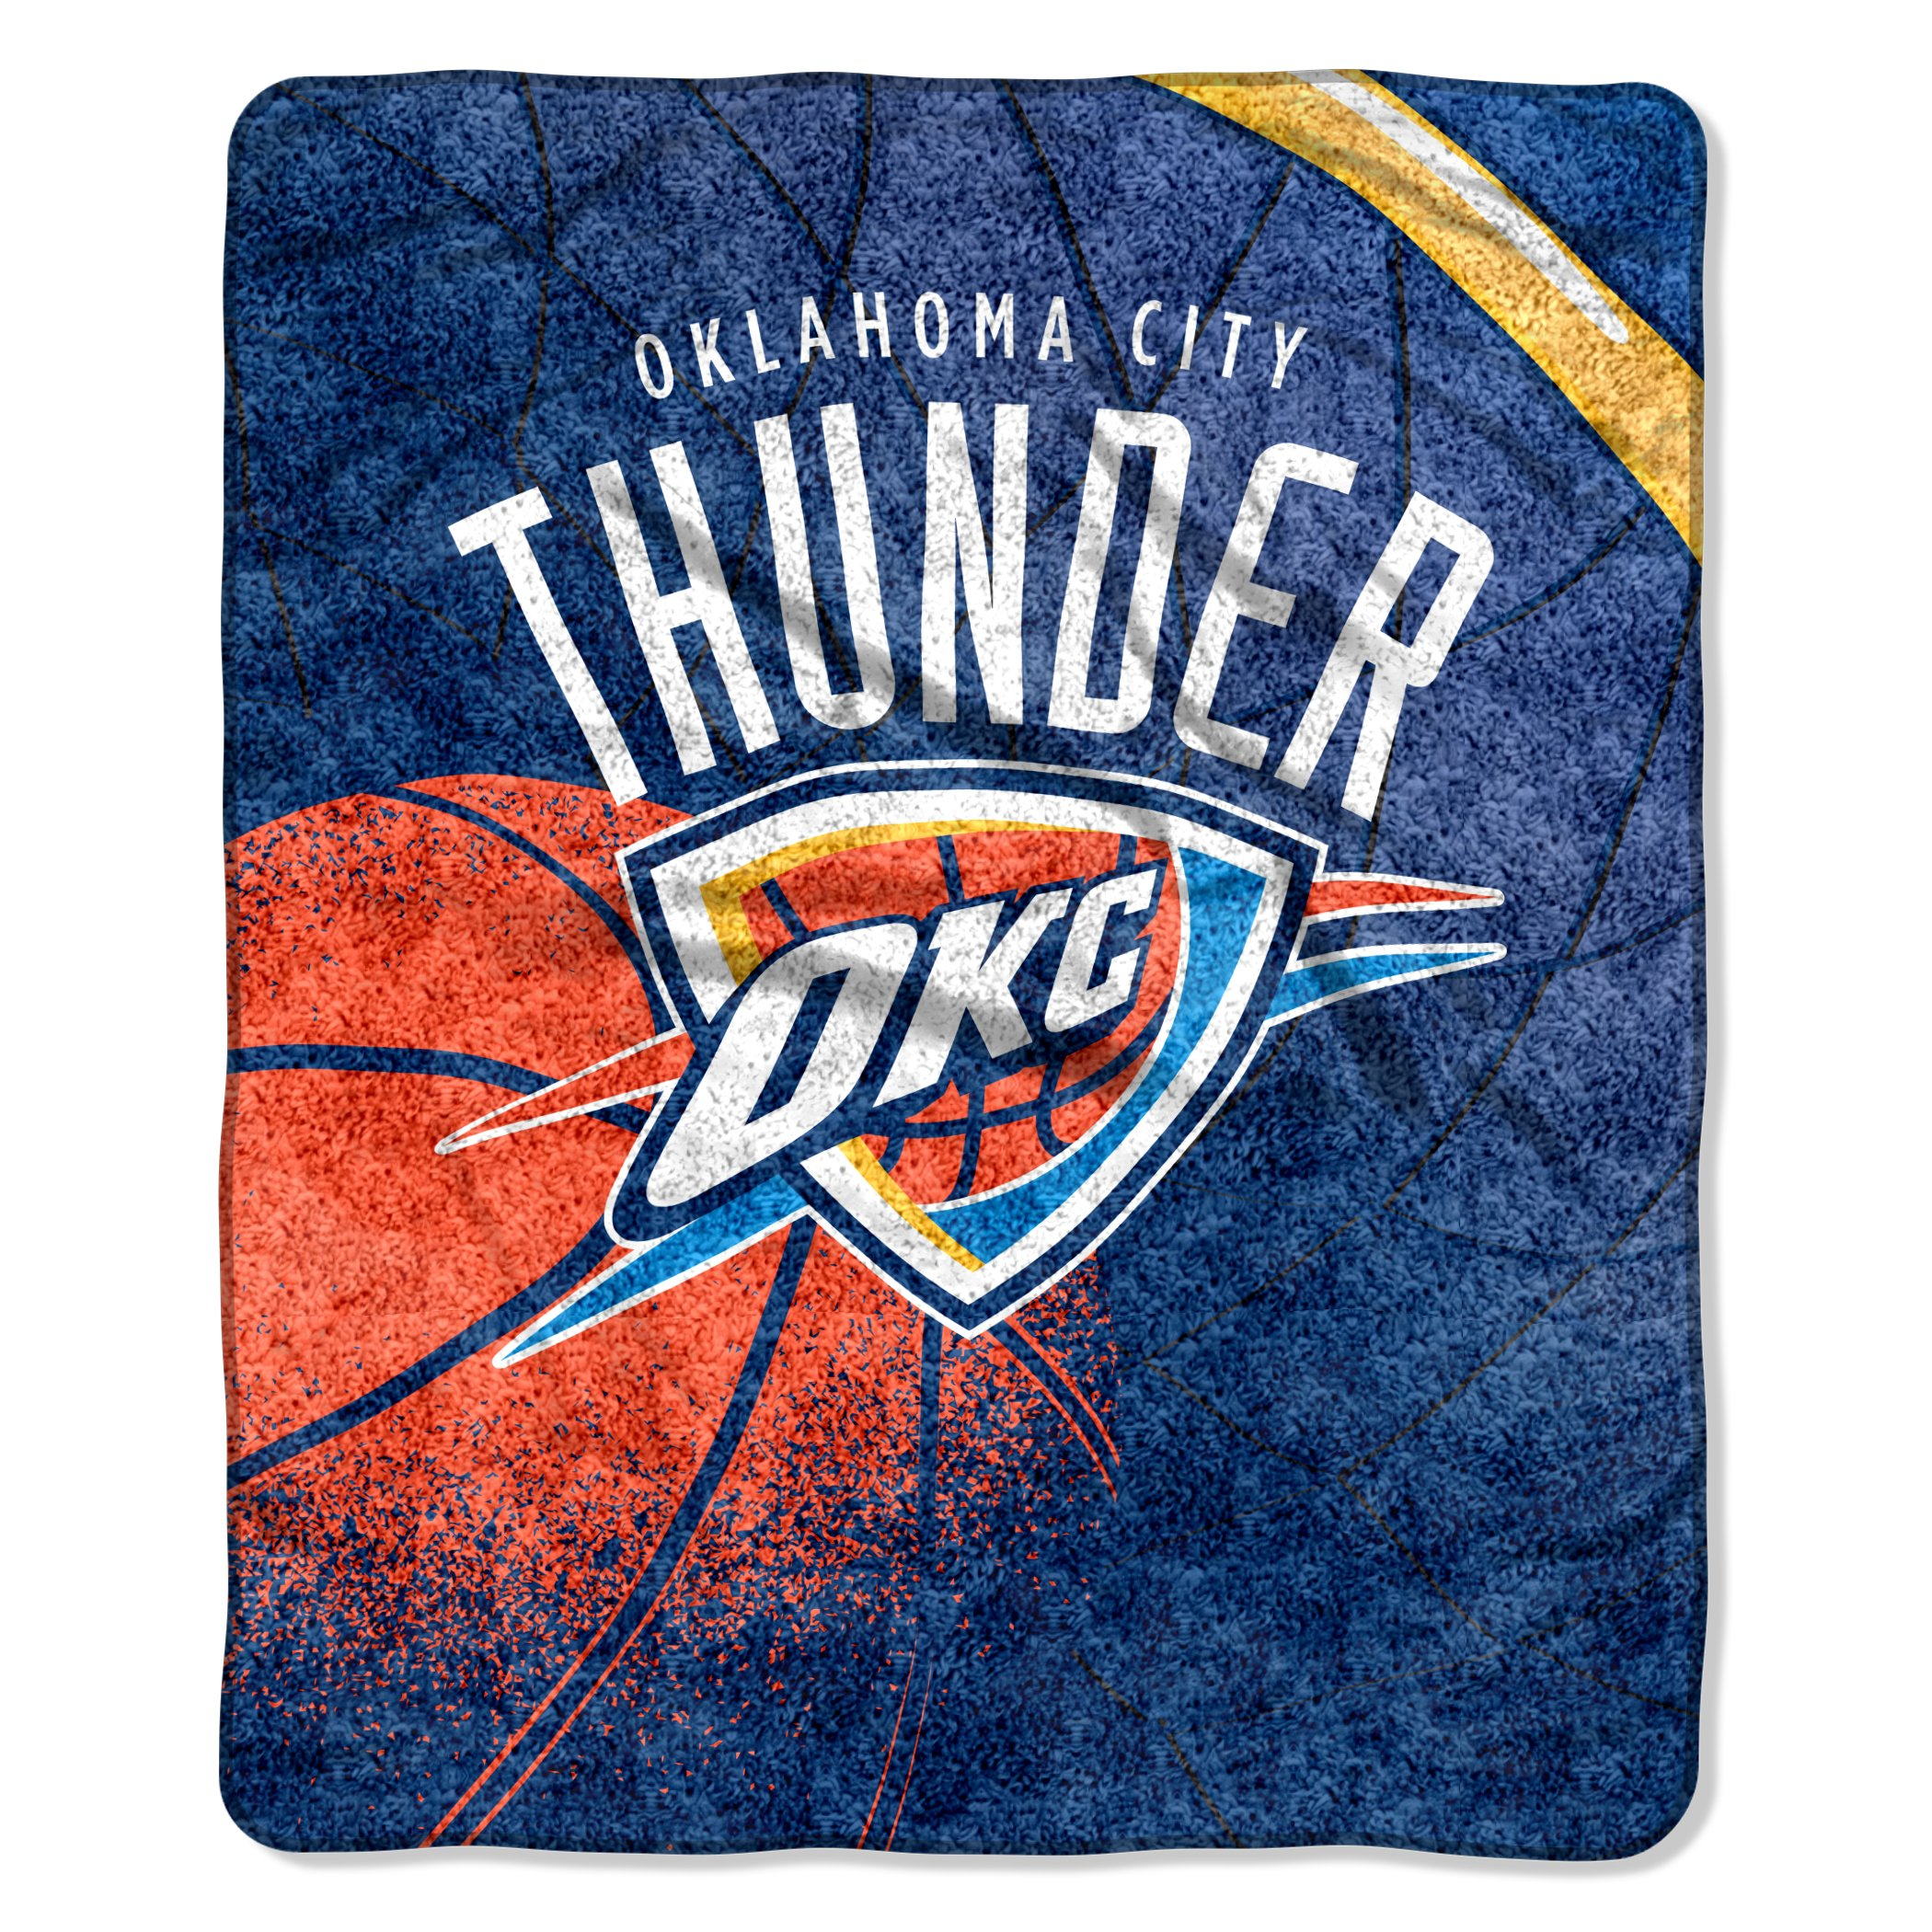 The Northwest Company Officially Licensed NBA Oklahoma City Thunder Reflect Sherpa on Sherpa Throw Blanket, 50'' x 60''